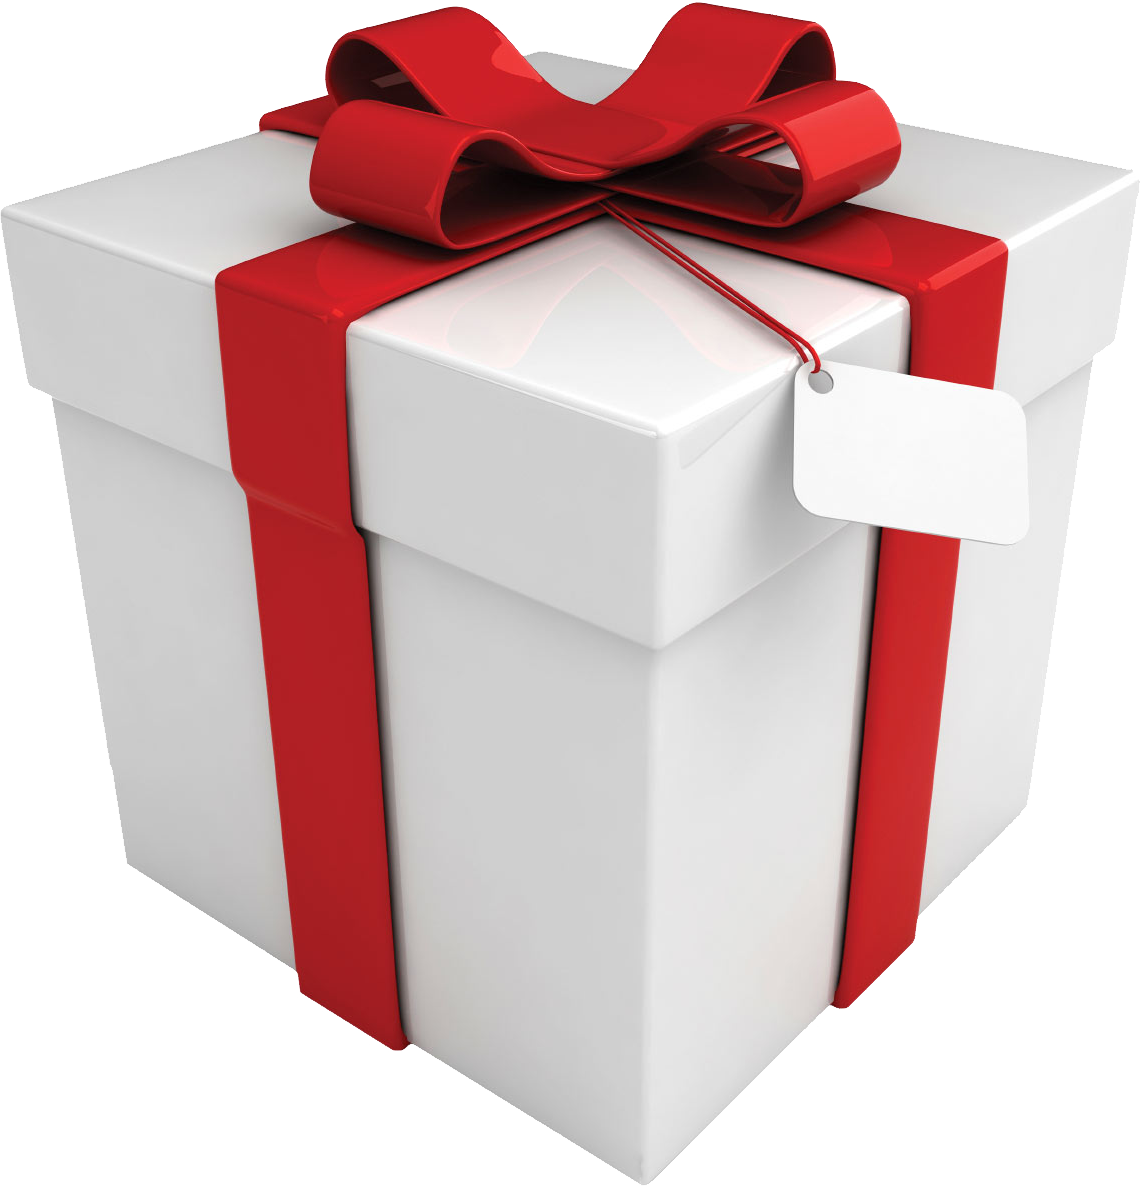 Grab and download Gift High Quality PNG